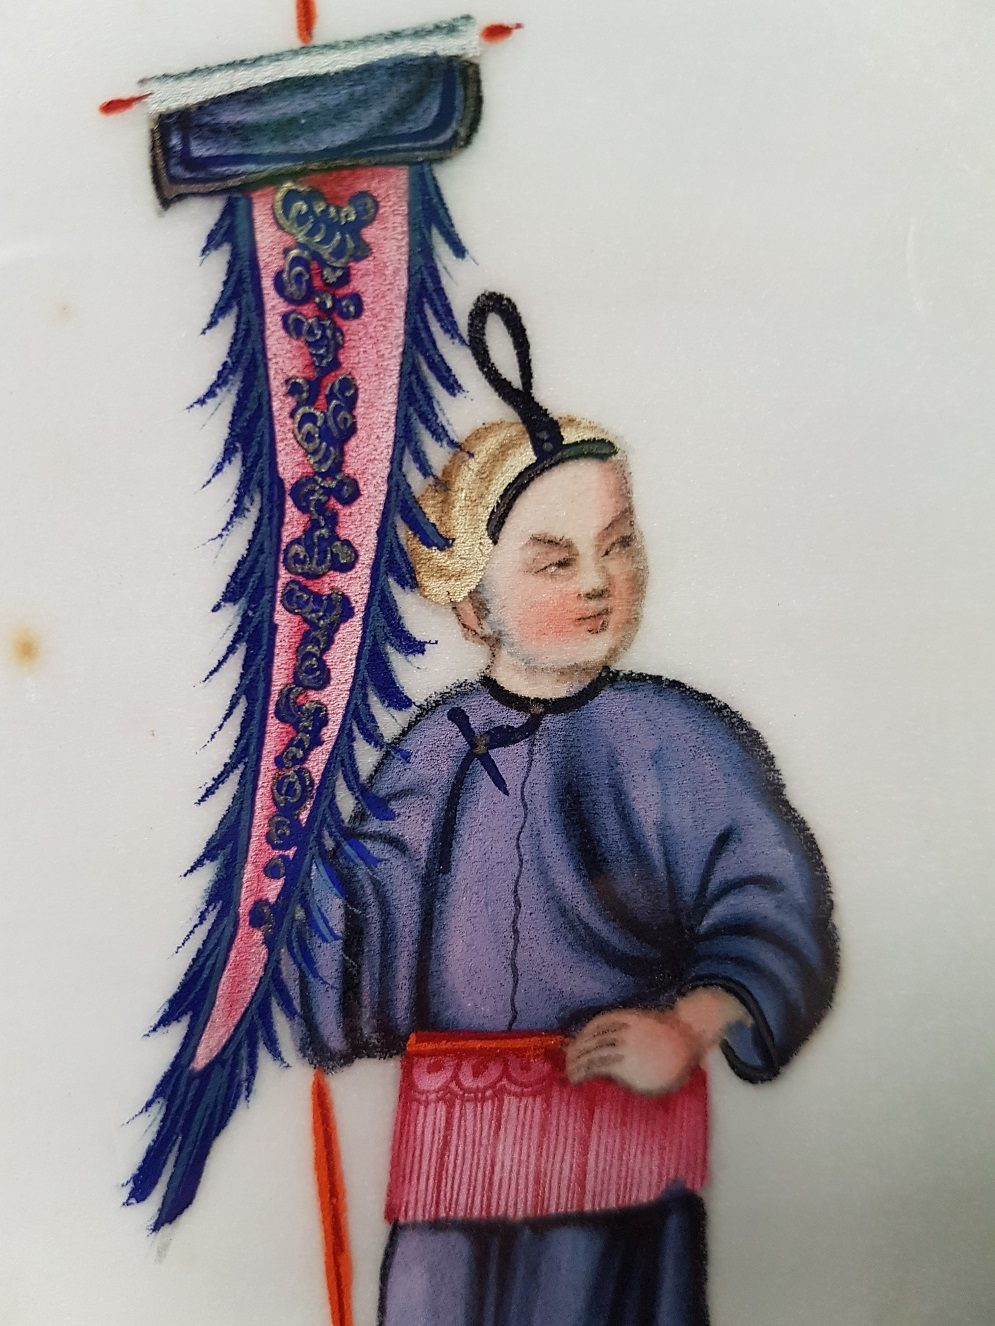 Pit paper Painting of a Chinese Man Holding a Colorful Banner